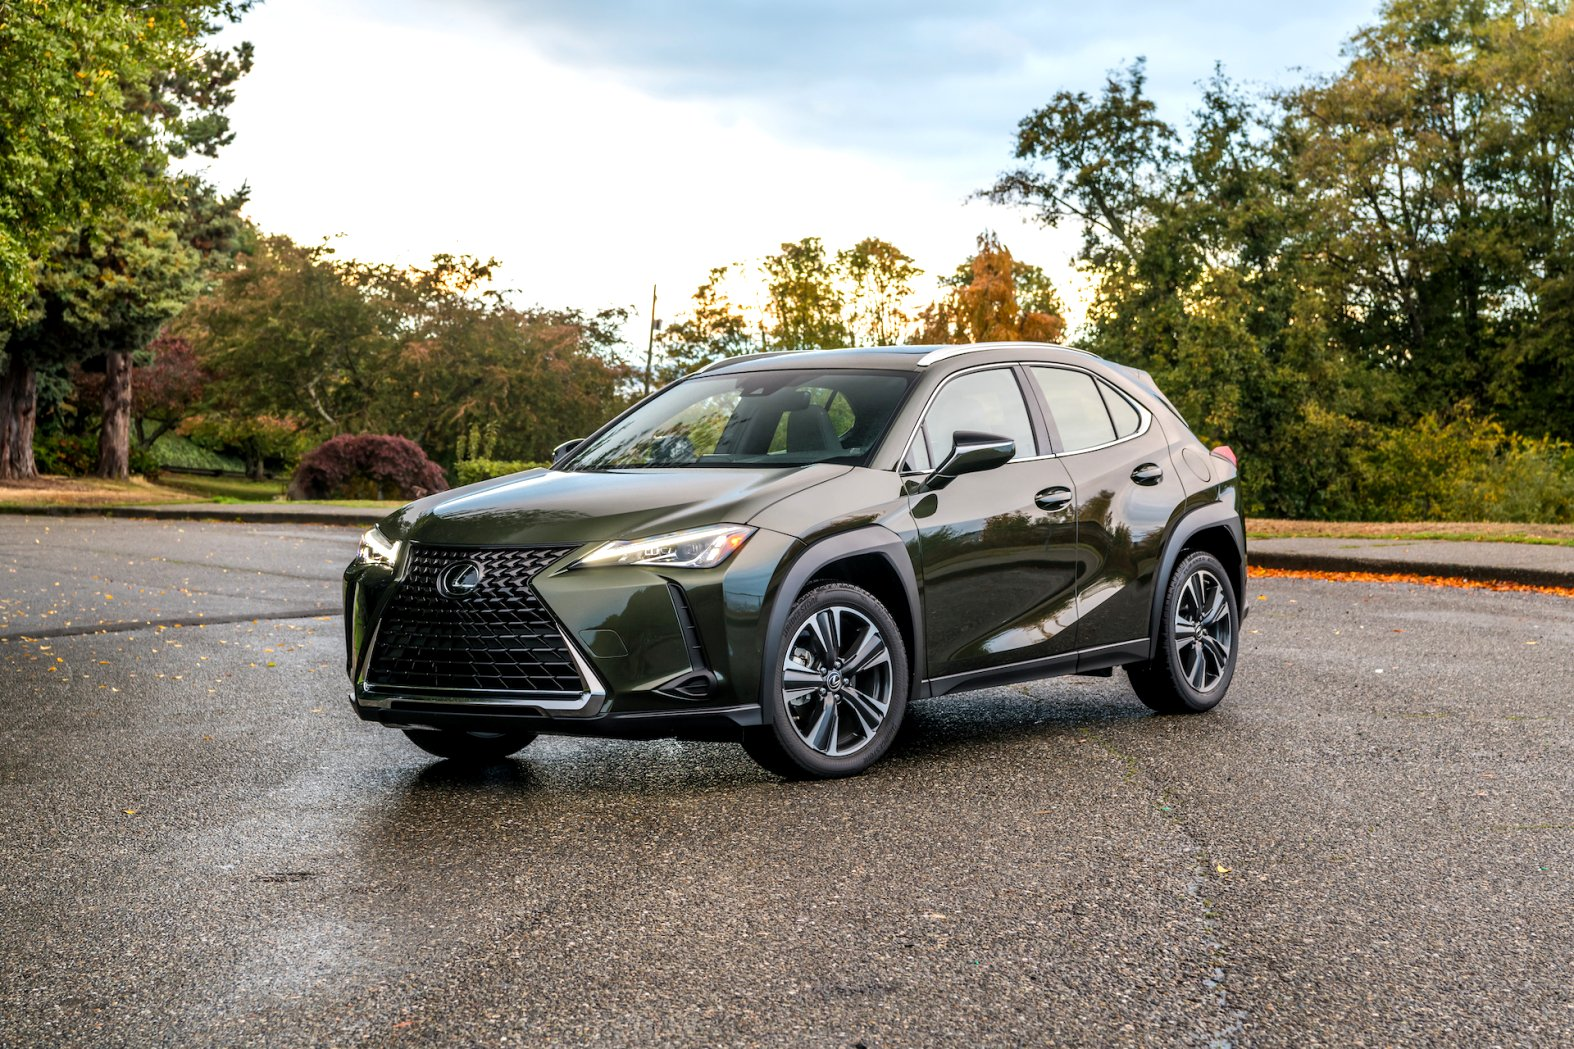 2020 lexus ux review First Drive